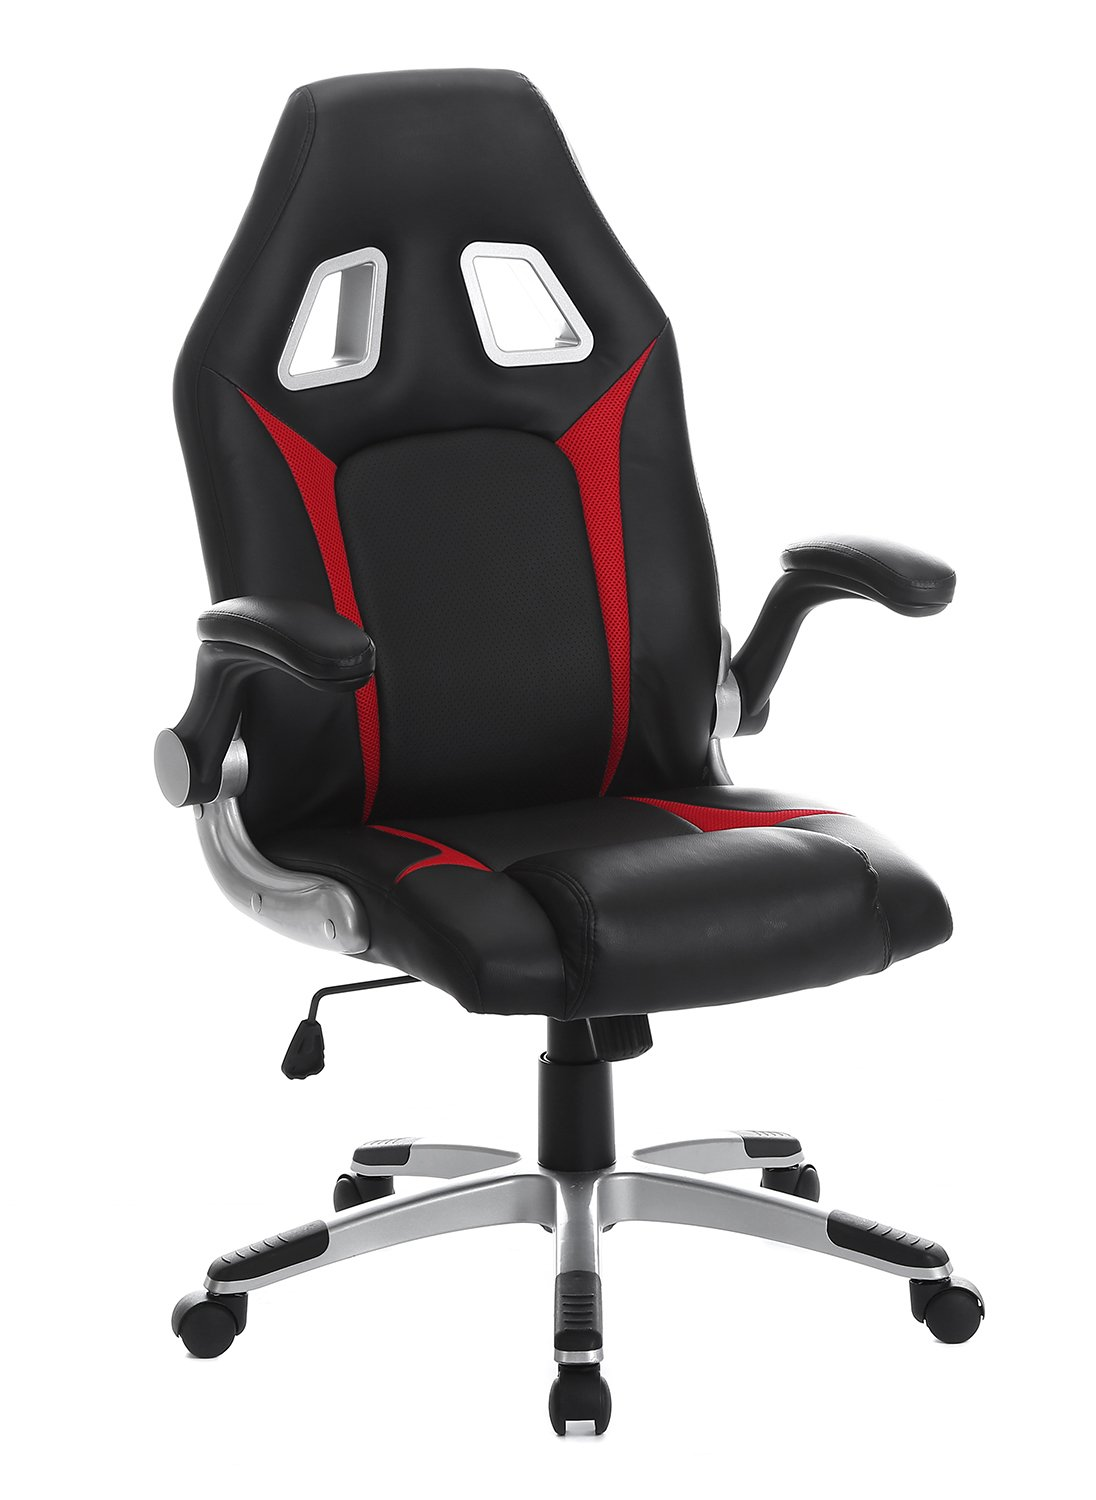 SEATZONE Racing Car Style Gaming Chair with Thick Padded Bucket Seat and Flip-Up Armrest for Home, Office, Video Game Room, Computer Desk, Leatherette, Red